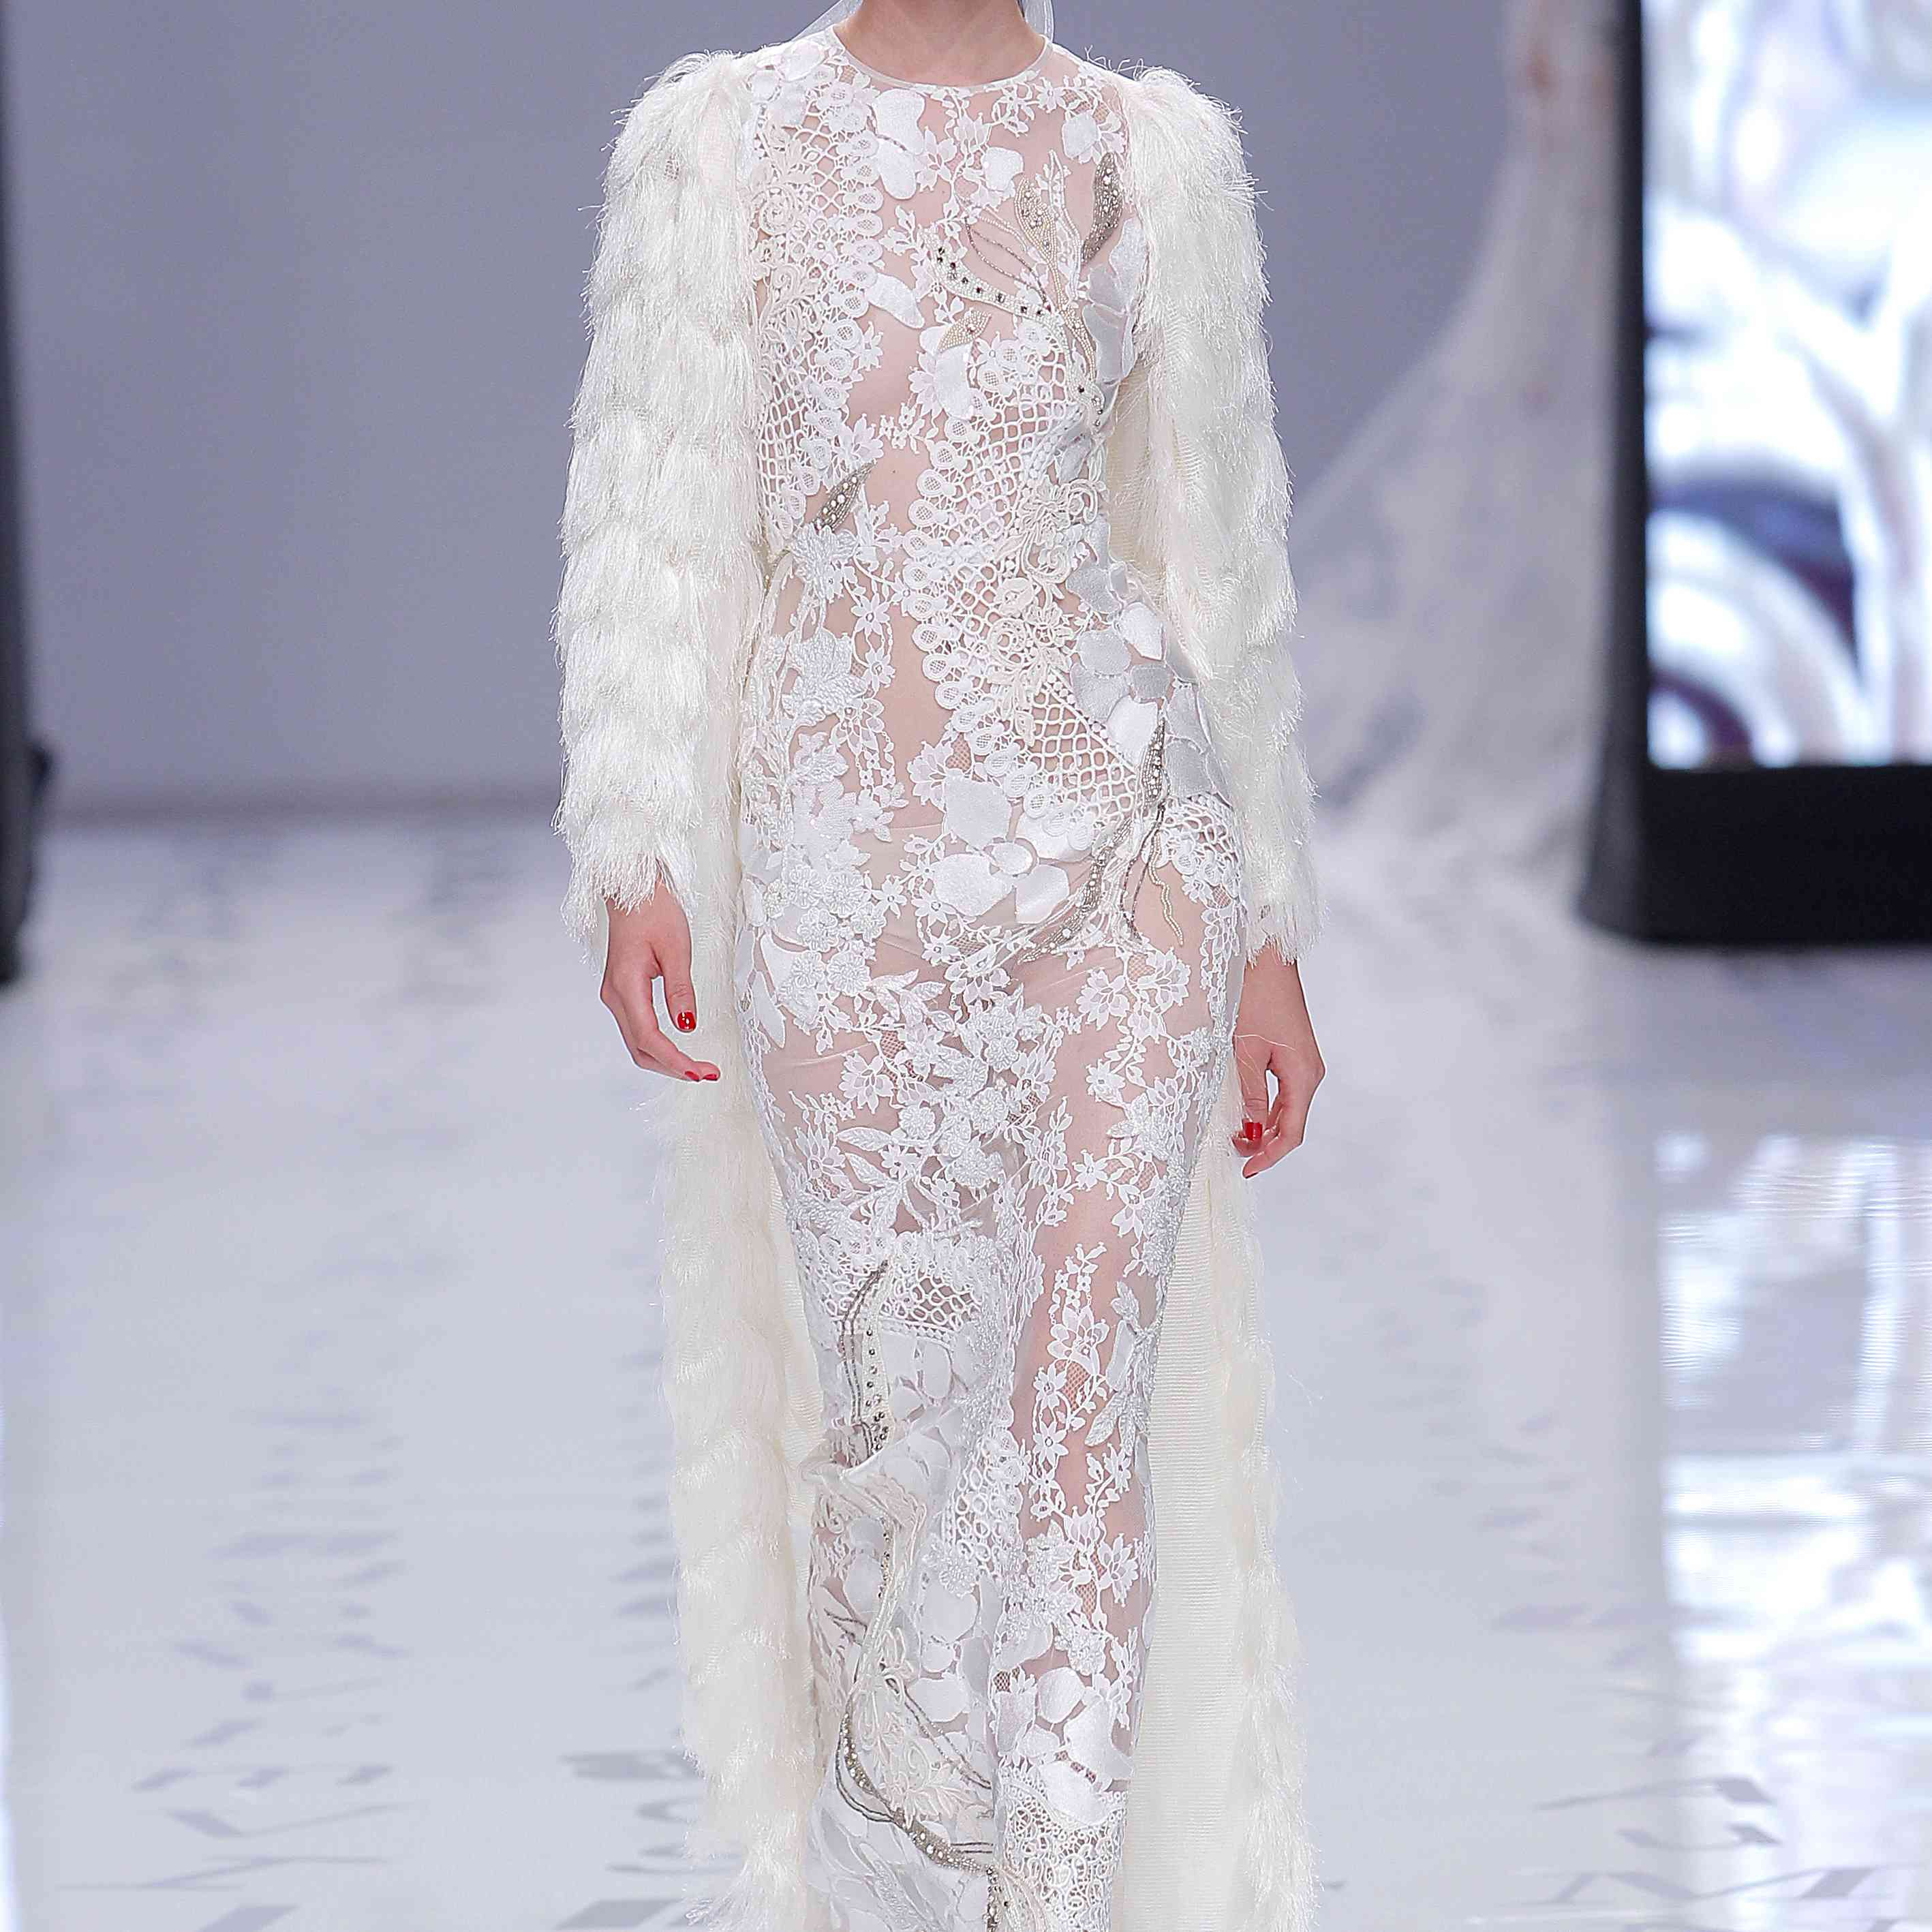 Model in an embroidered tulle mermaid dress with rhinestone appliques of different motifs and a long fringe coat